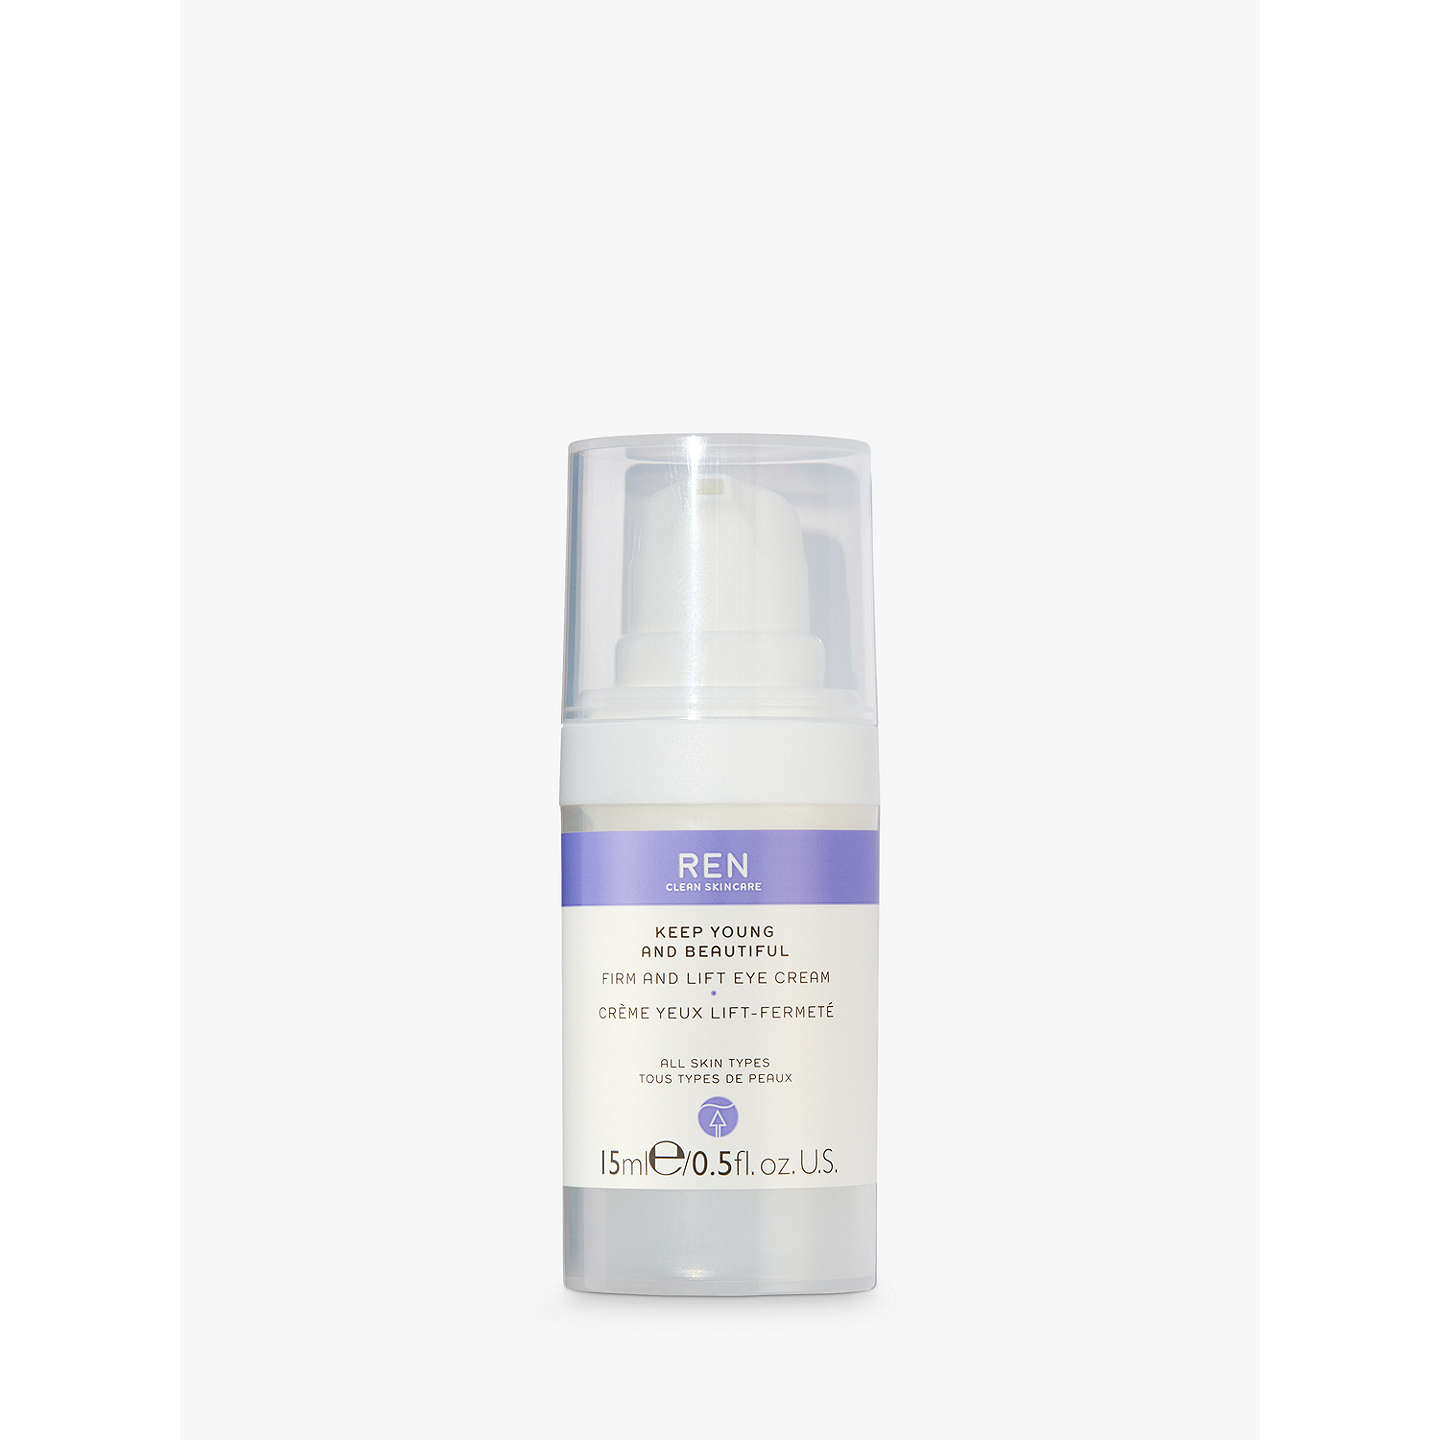 BuyREN Keep Young and Beautiful™ Firm and Lift Eye Cream, 15ml Online at johnlewis.com